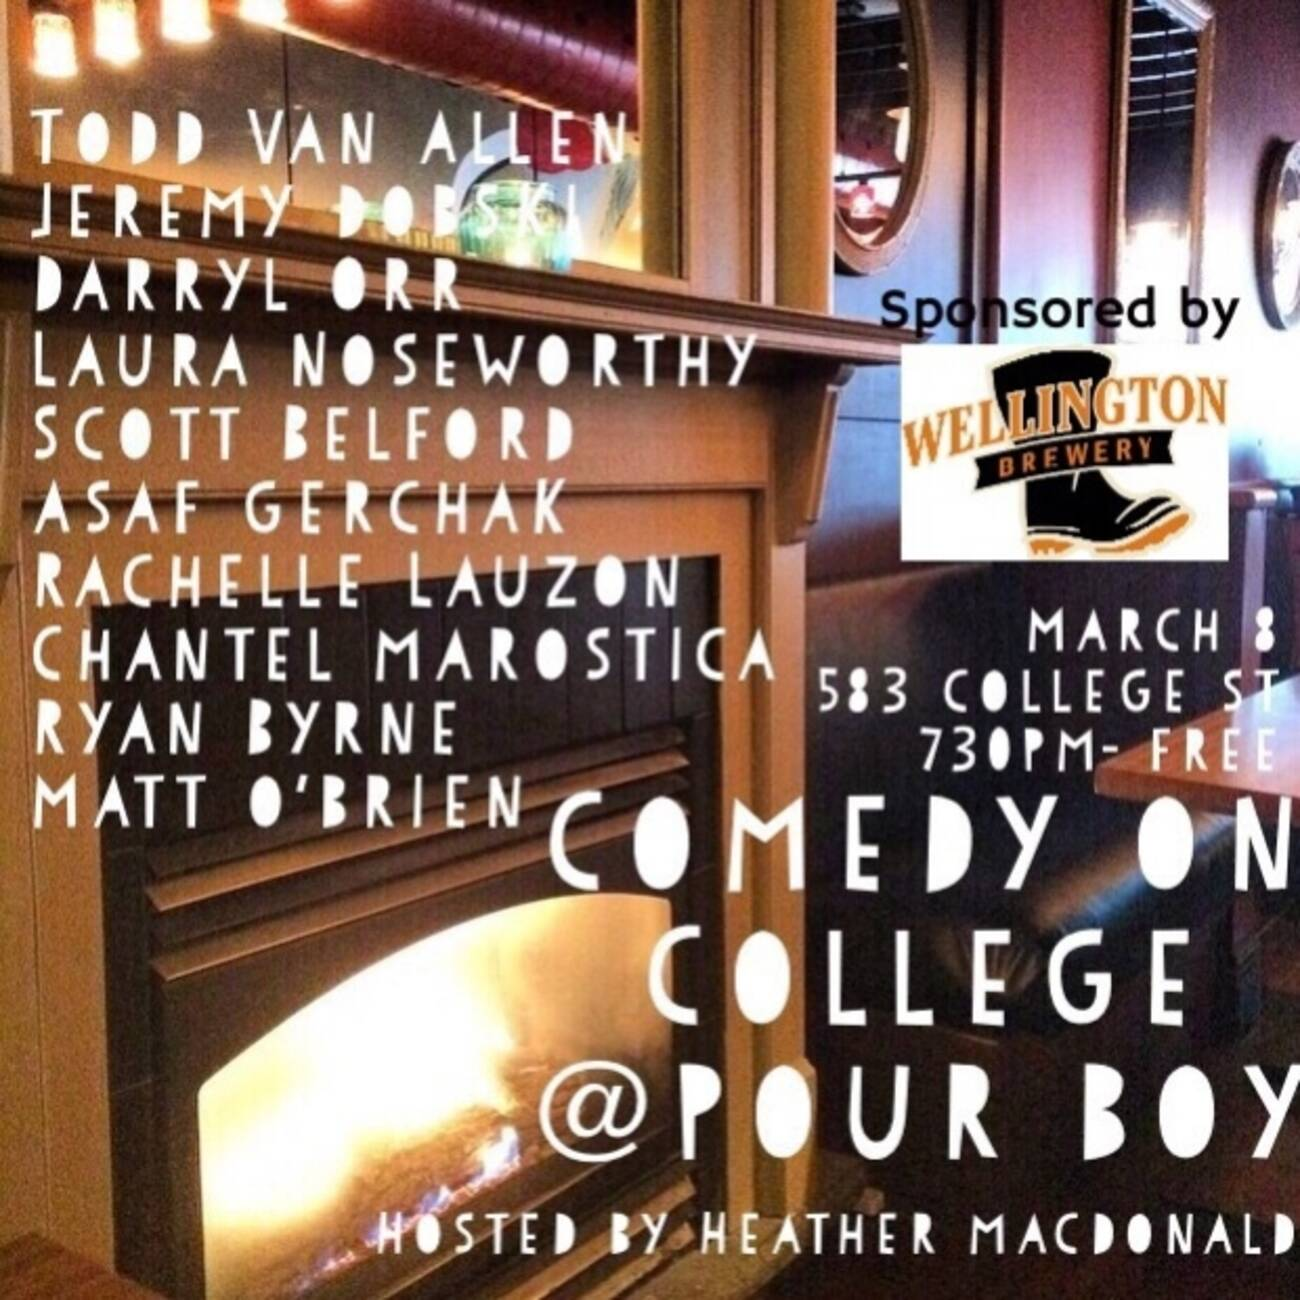 Comedy On College Pour Boy March 9